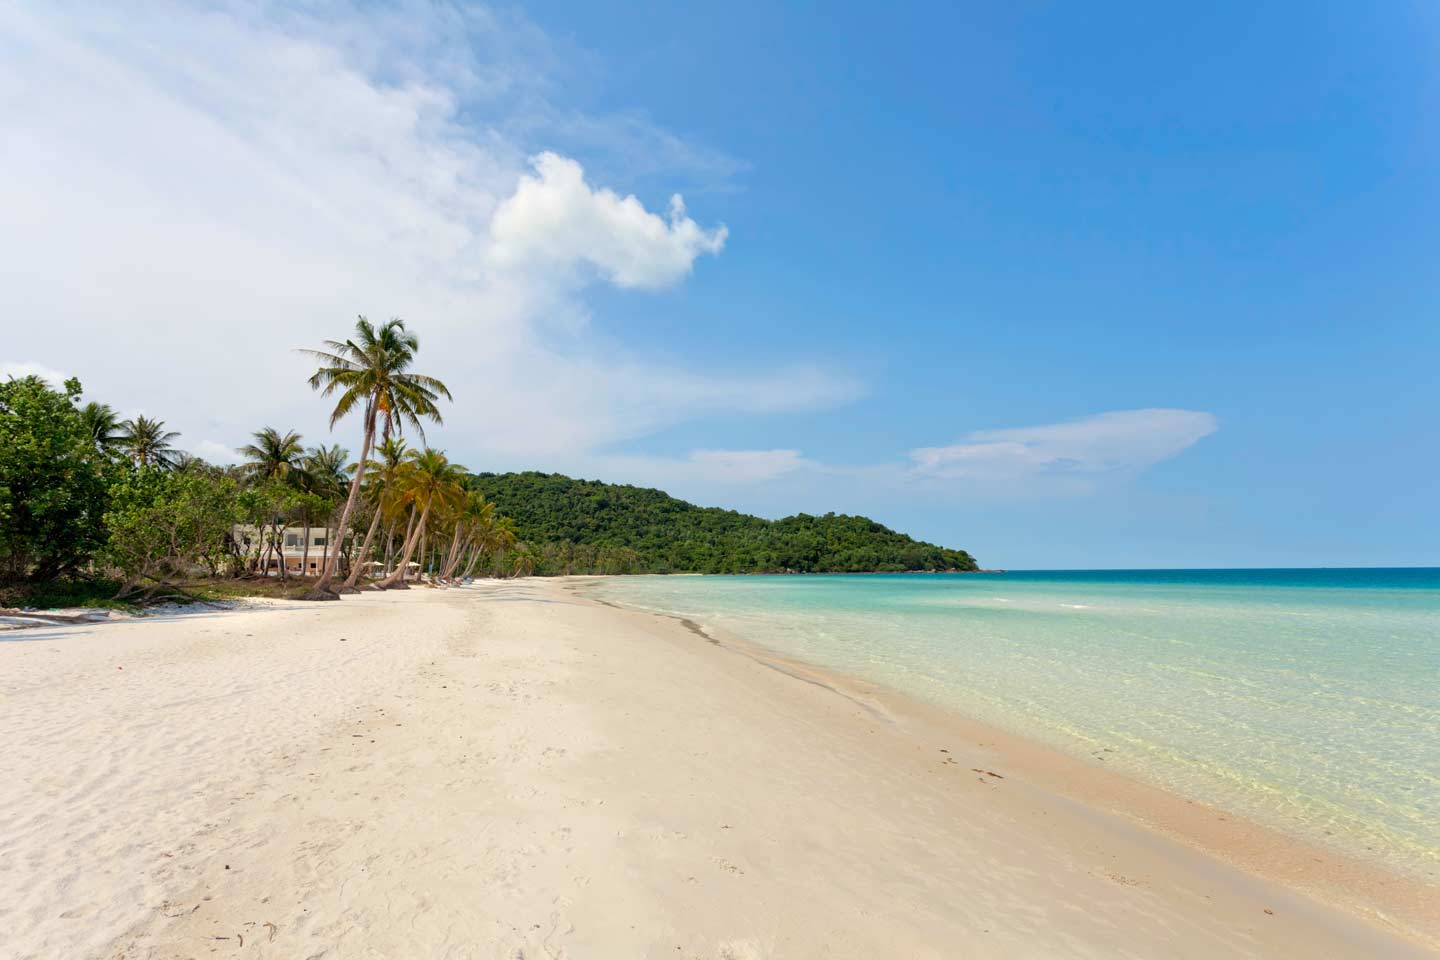 10 Things to Do in Phu Quoc Island That You Shouldn't Miss